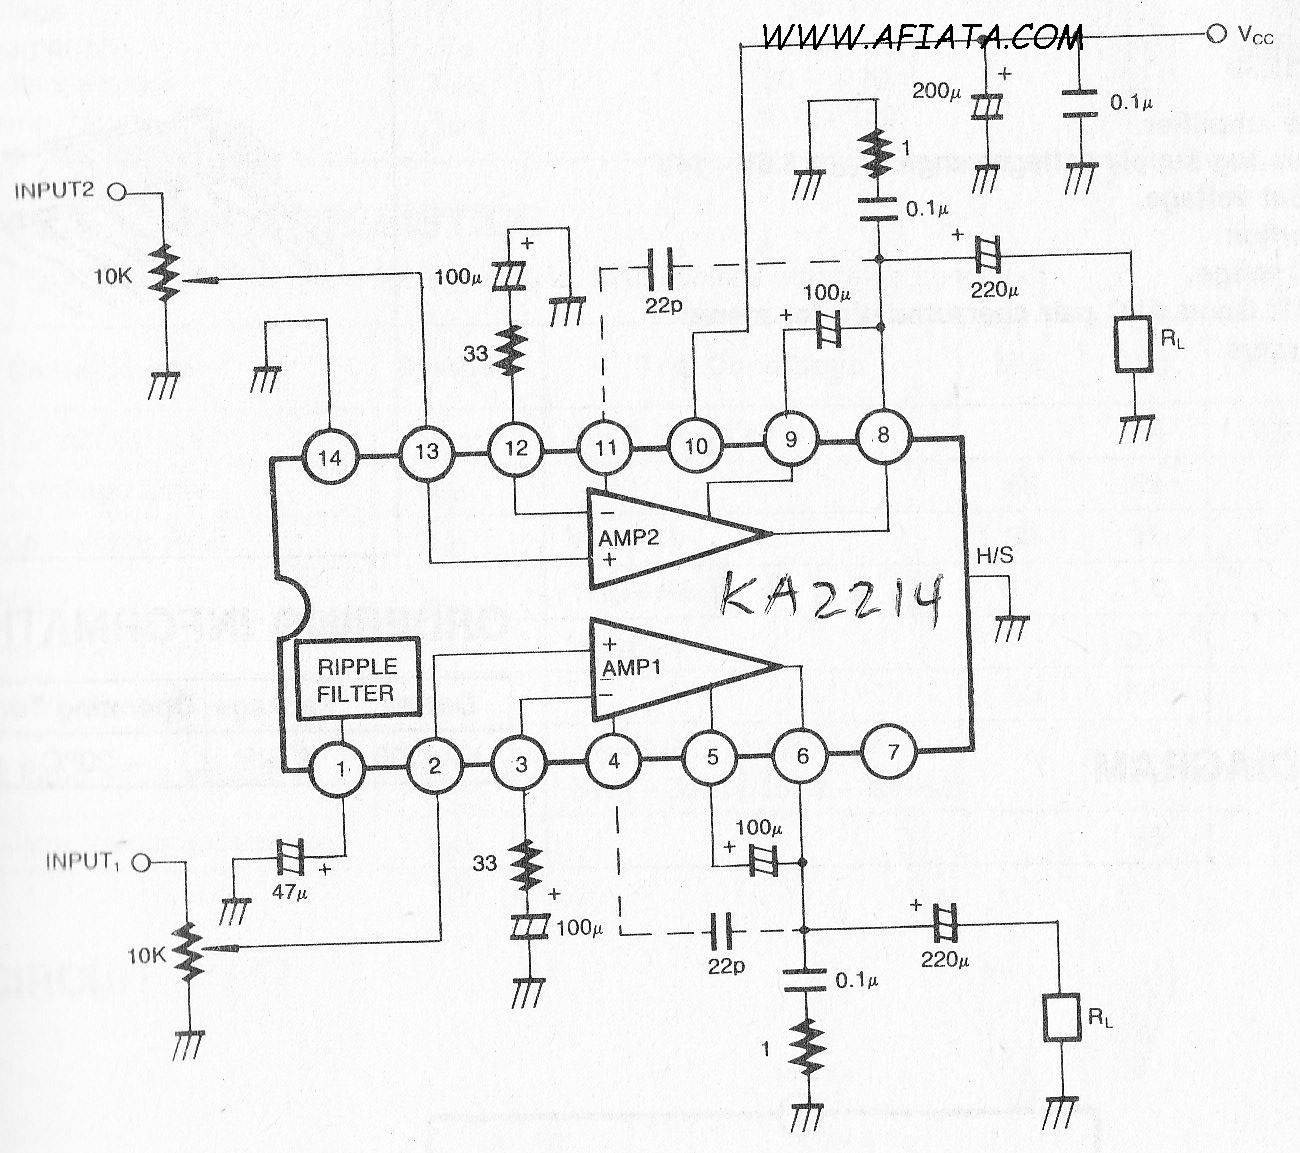 1.2W Dual Audio Power Amplifier circuit using KA2214